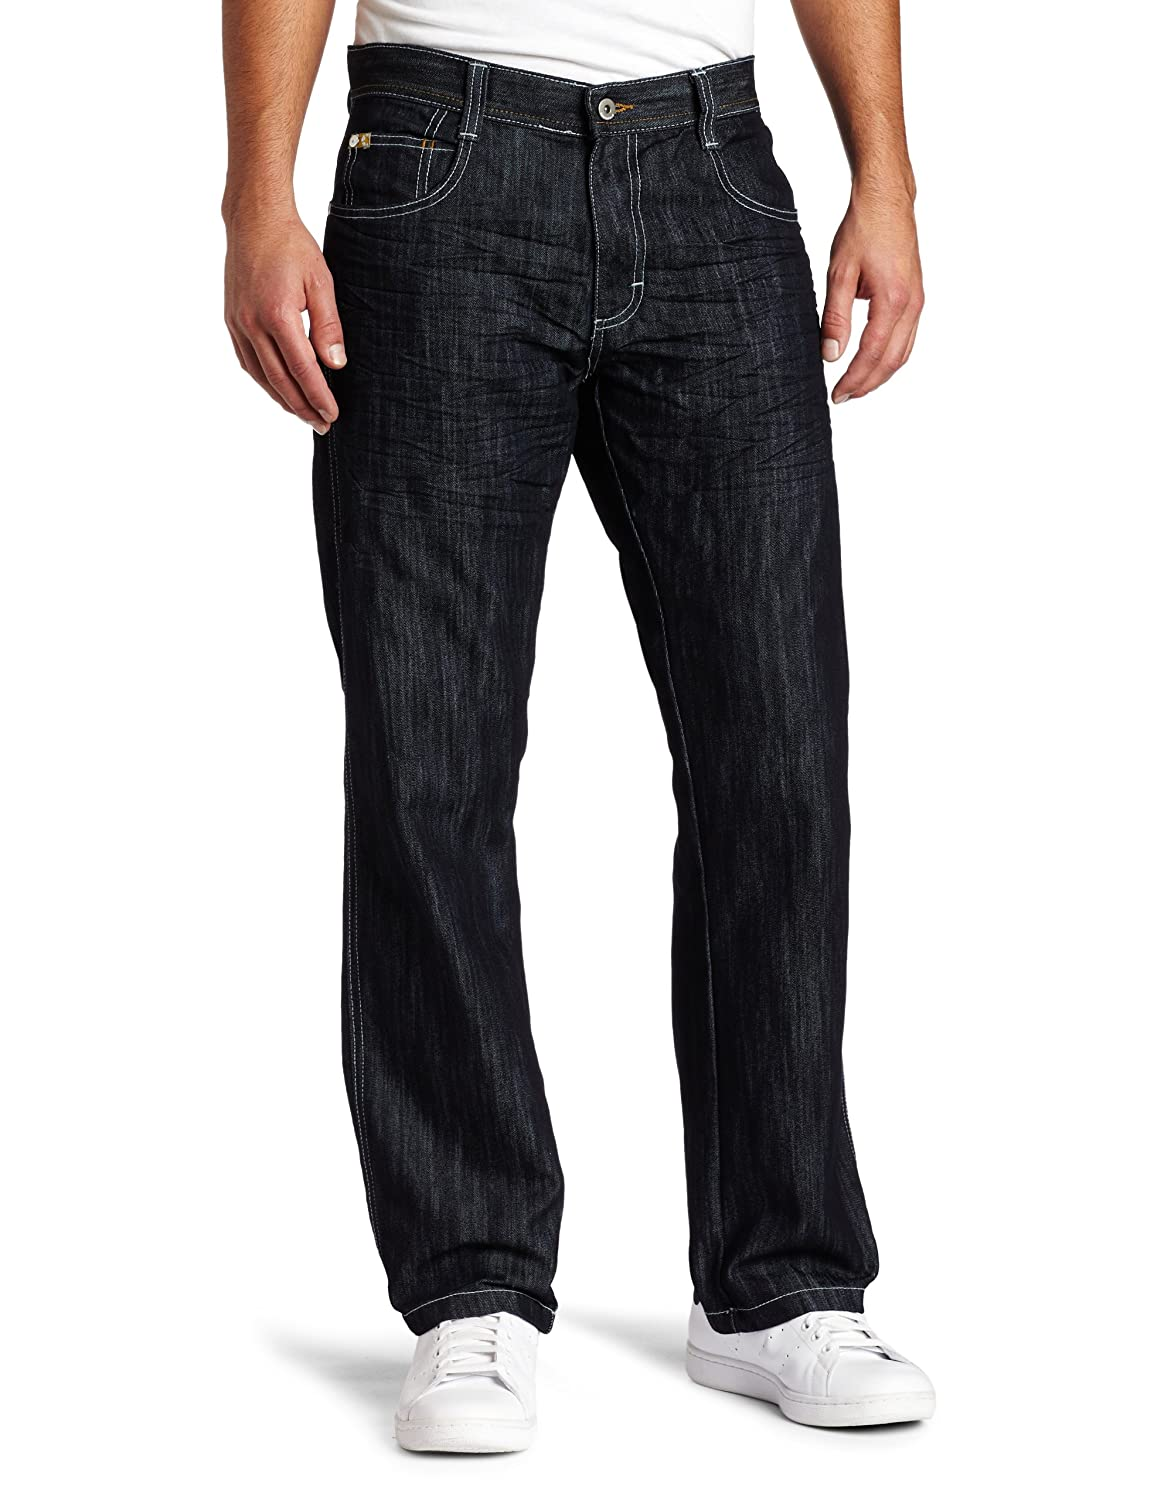 Southpole mens big-tall Men's Big & Tall Relaxed Fit Basic Shiny Streaky Denim 4187-2126